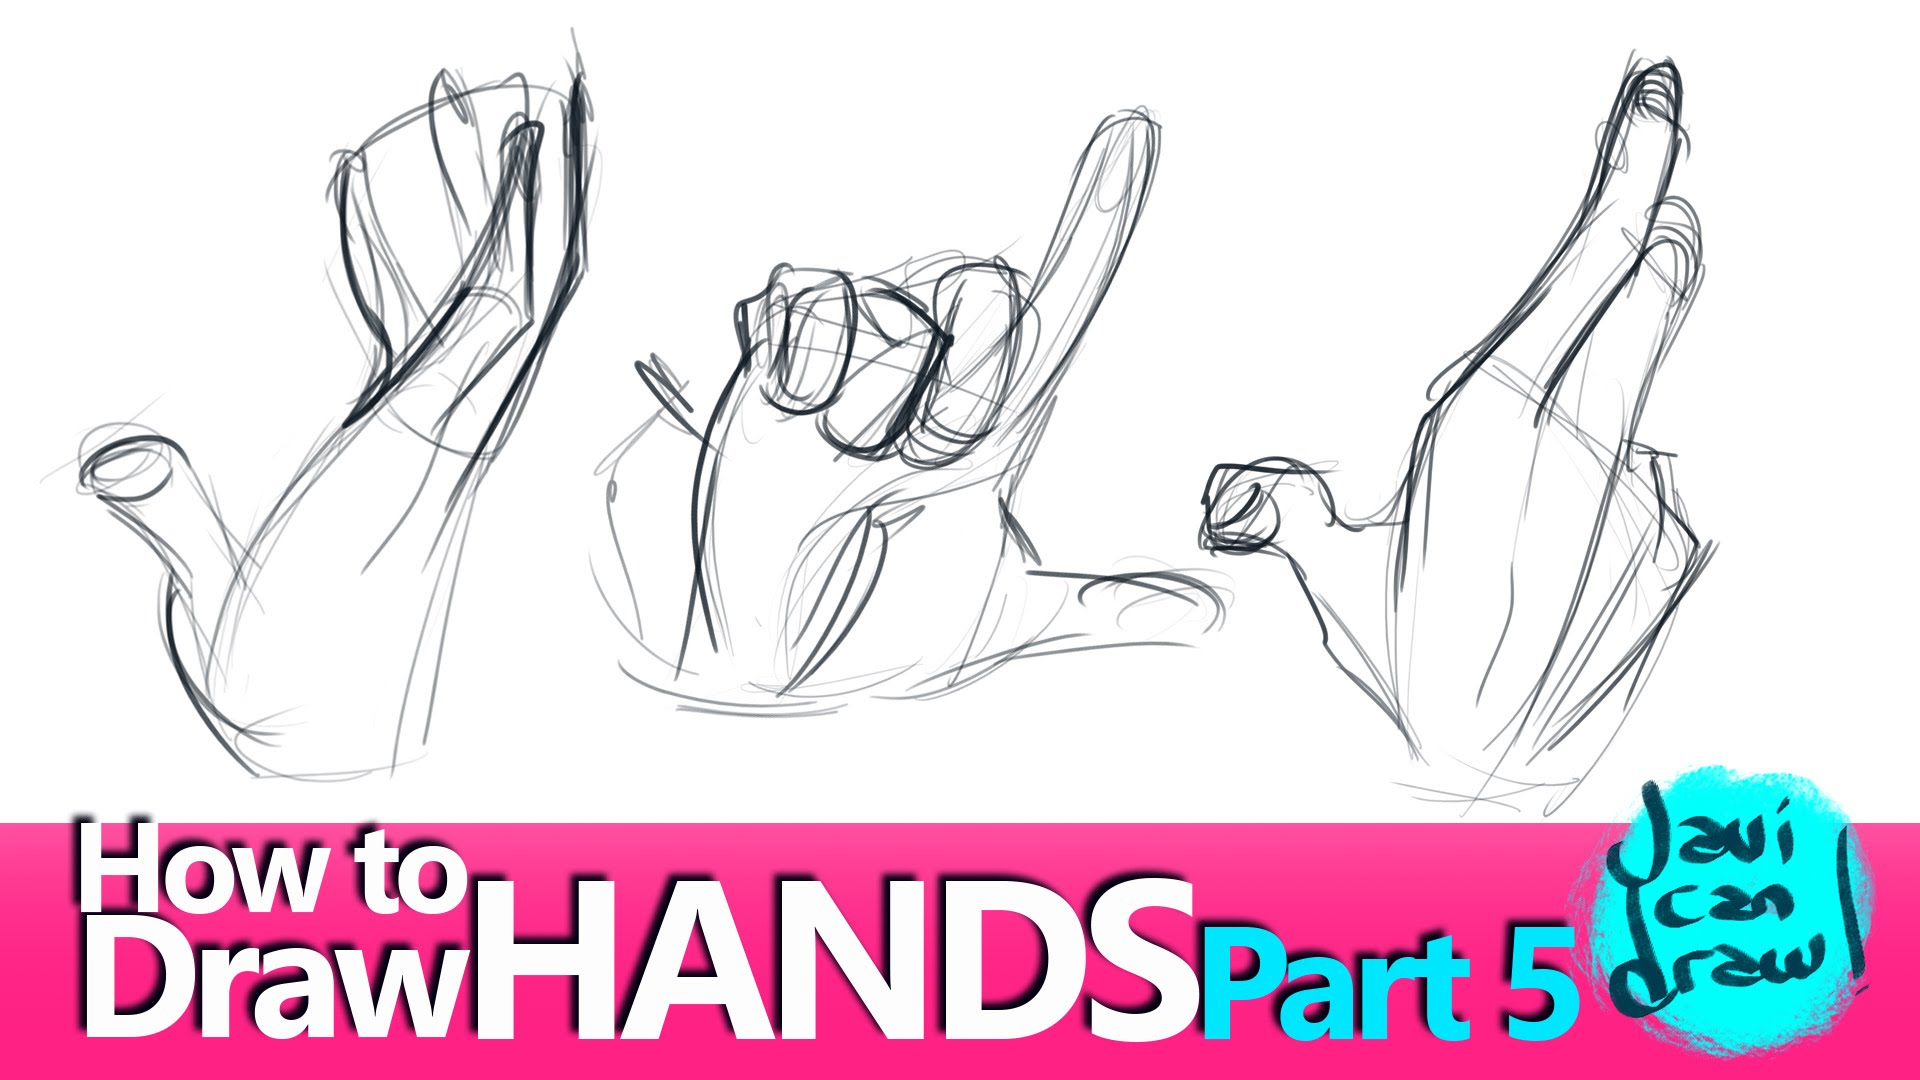 Drawn hand gesture HANDS GESTURE YouTube GESTURE WITH